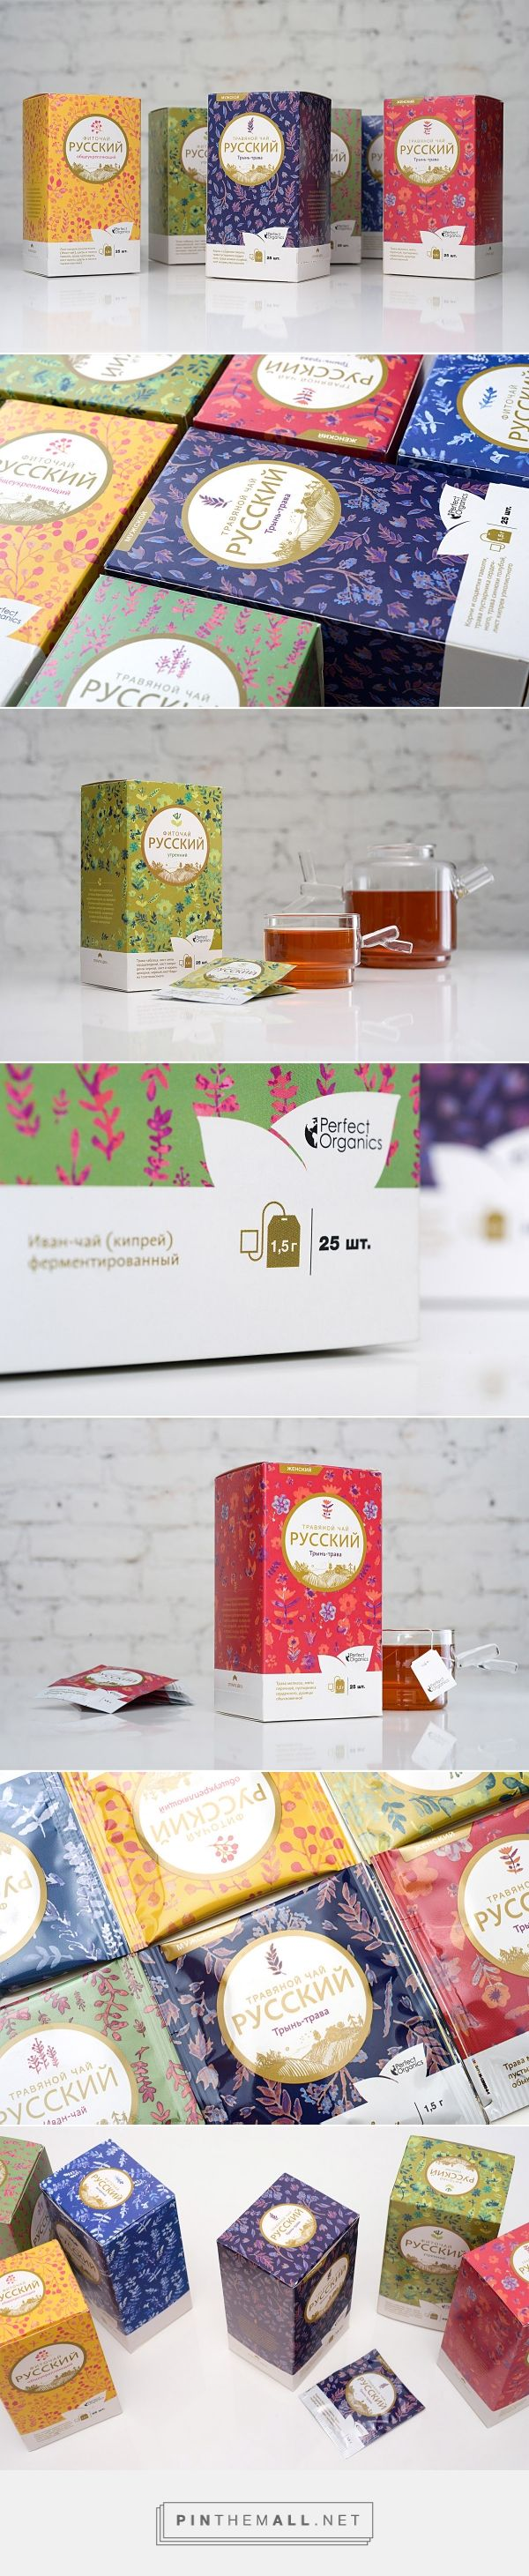 Product design, illustration and packaging for Russian herbal collection on Behance by Deza Design St. Petersburg, Russia curated by Packaging Diva PD. Series of packaging for Russian tea Perfect Organics.